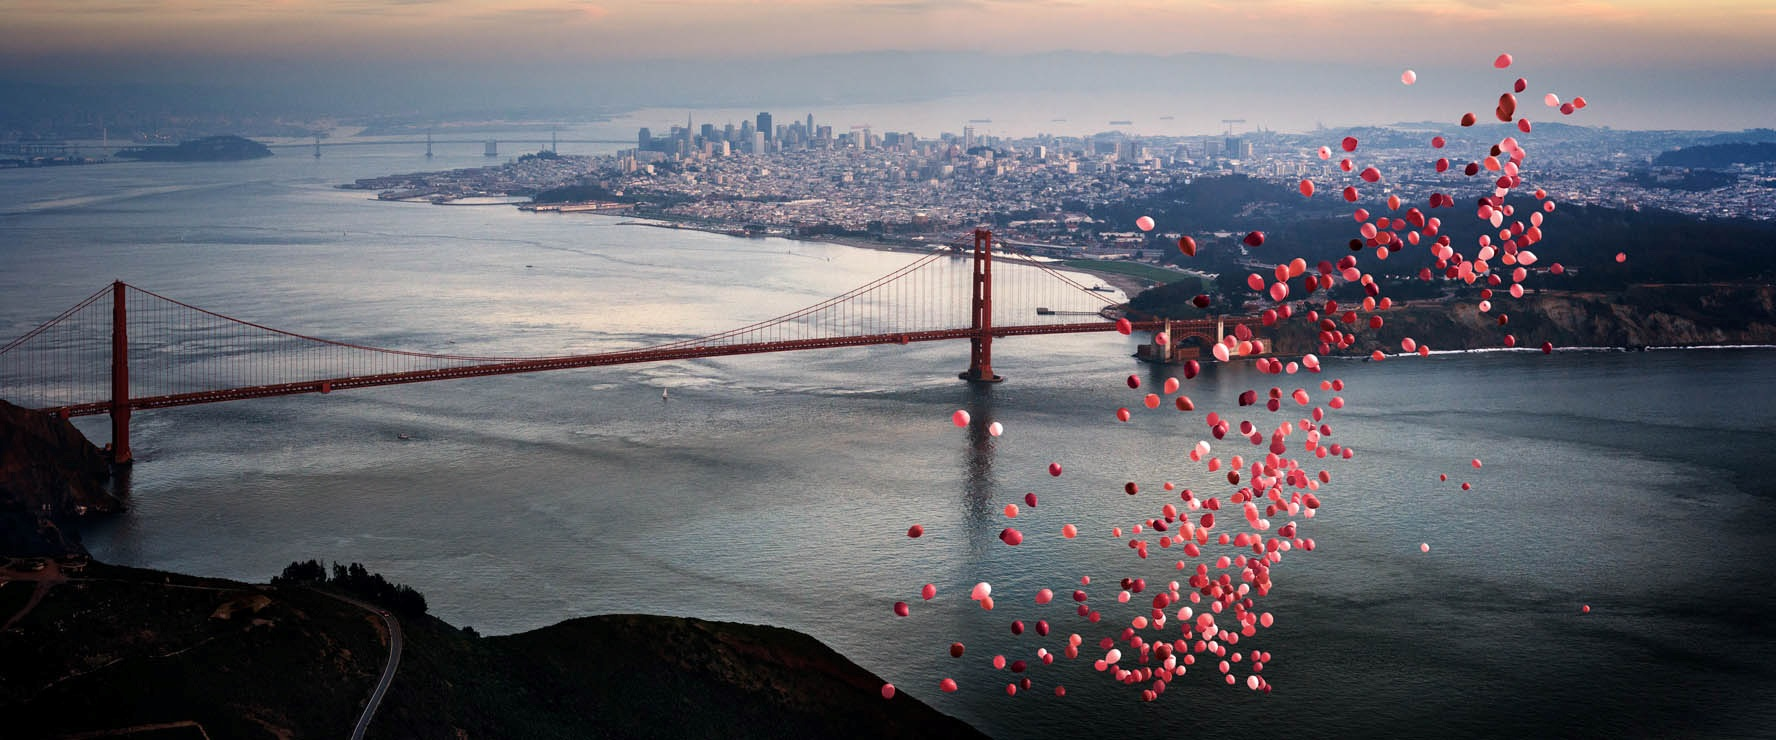 alt Balloons Over San Francisco